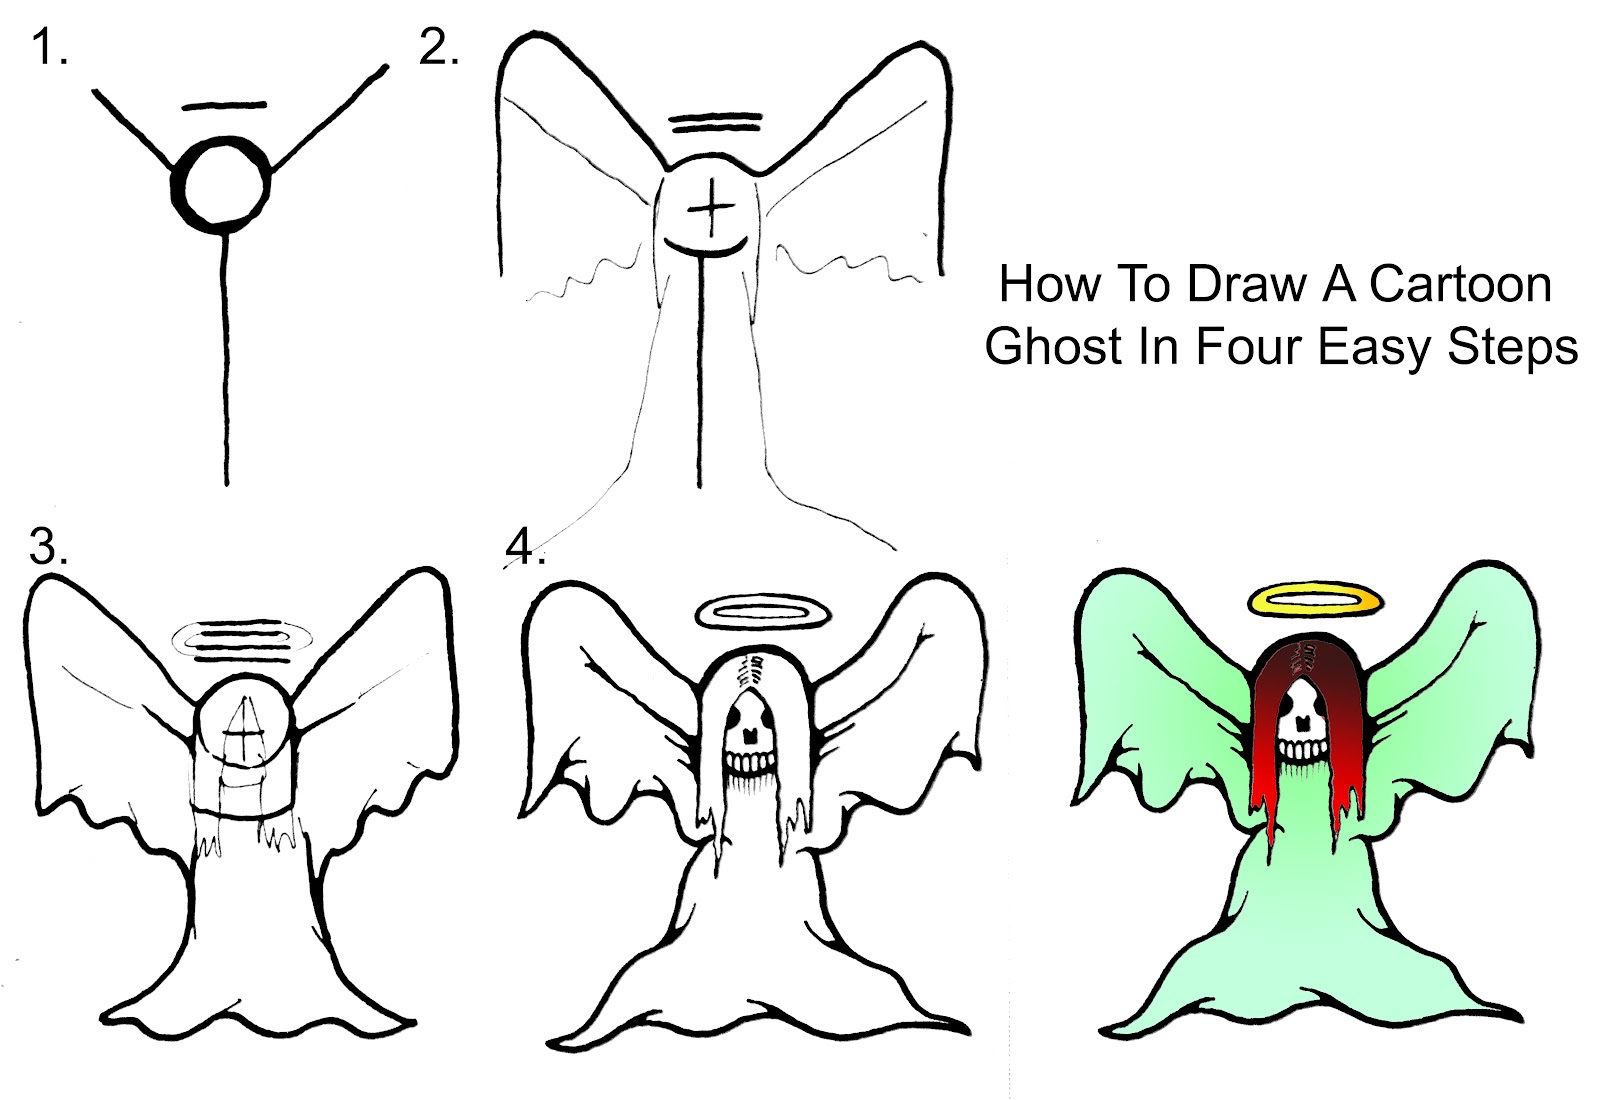 Uncategorized How To Draw A Ghost Step By Step how to draw a cartoon ghost step by daryl hobson artwork step